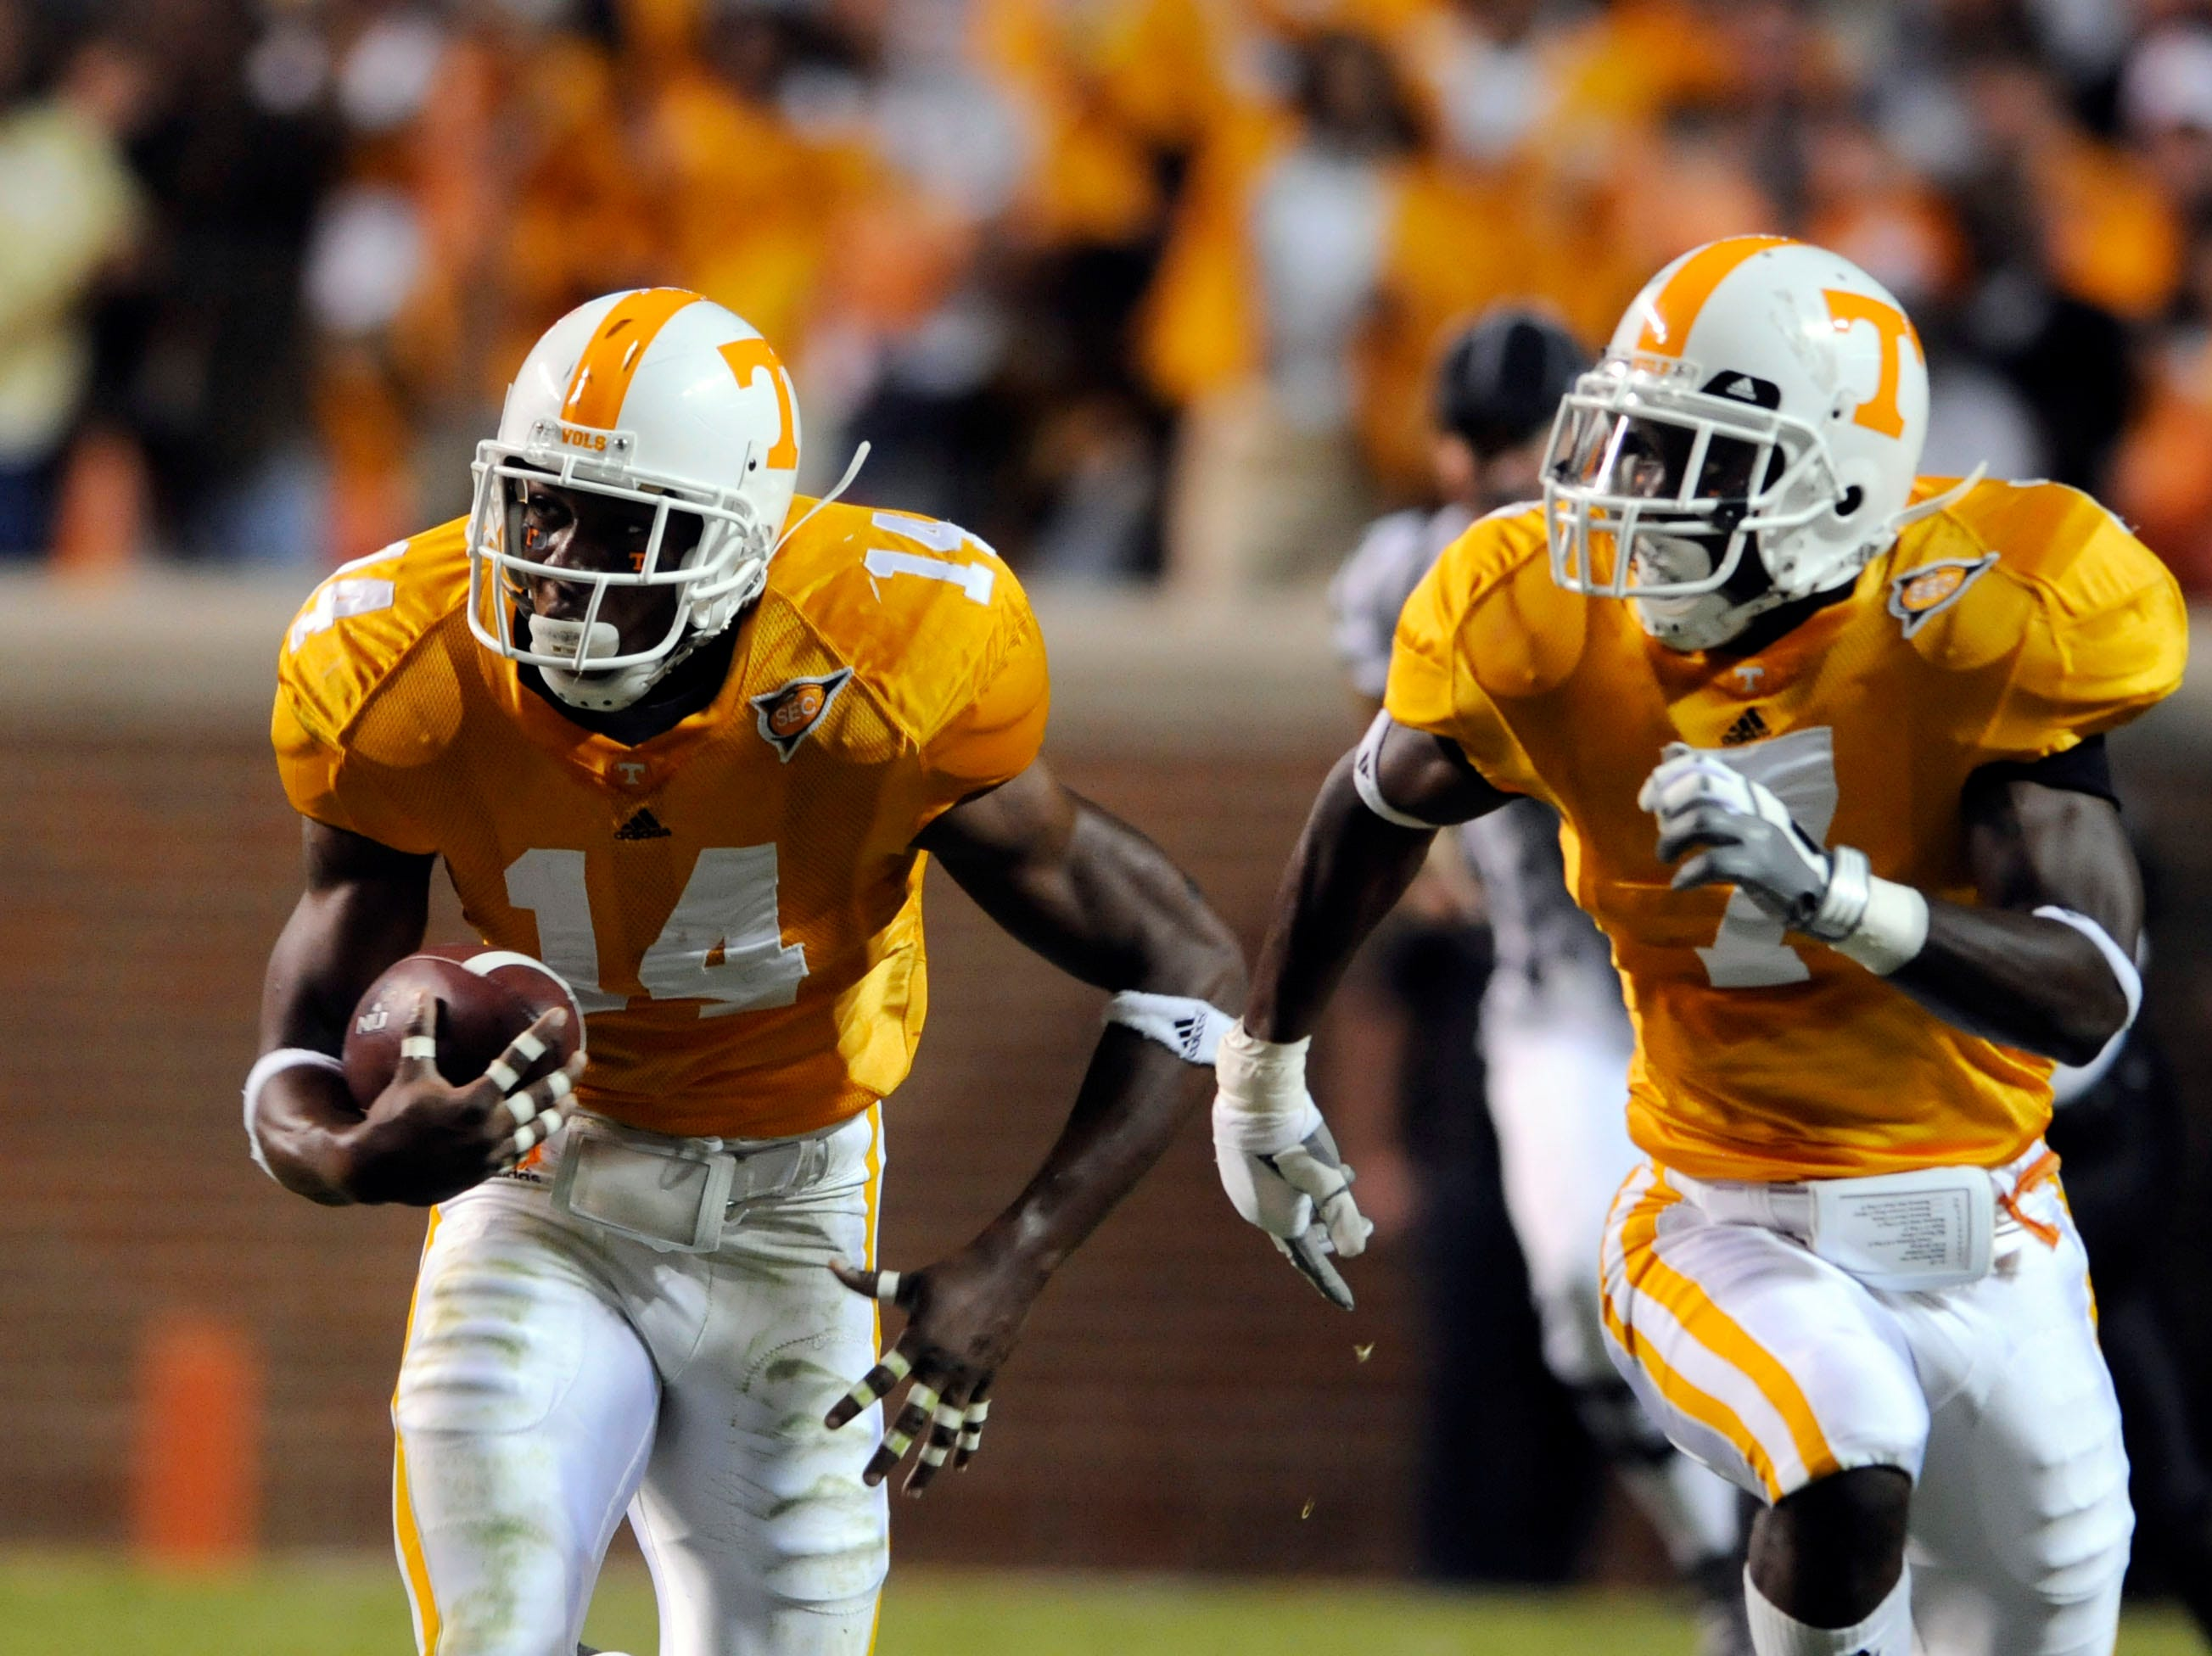 Tennessee defensive back Eric Berry (14) returns an intercepted pass for 48 yards with defensive back Demetrice Morley (7) Saturday in Neyland Stadium in Knoxville on Saturday, October 4, 2008.